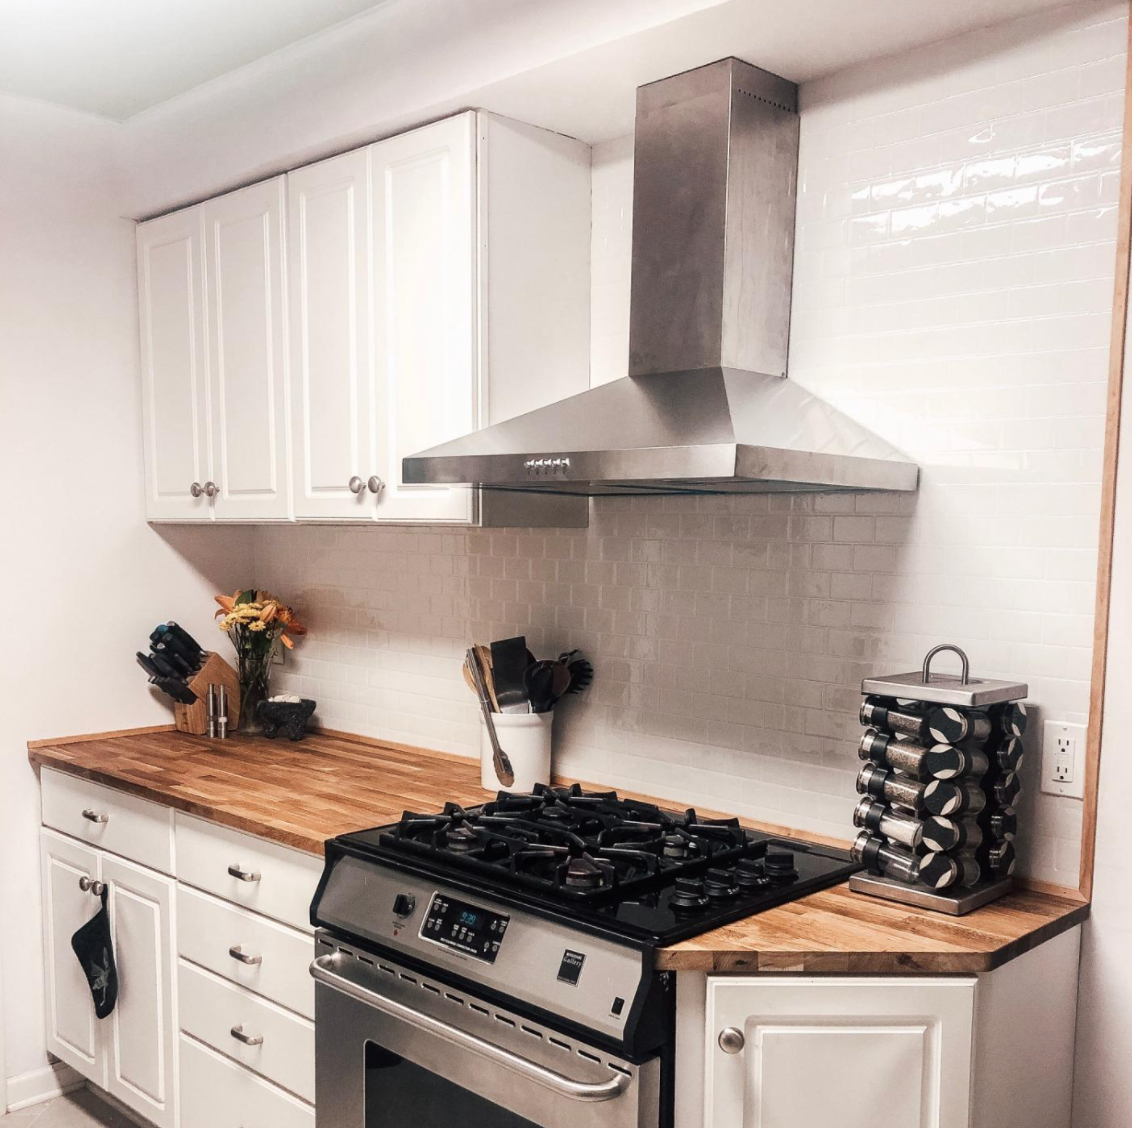 A reviewer's kitchen with the white tiles